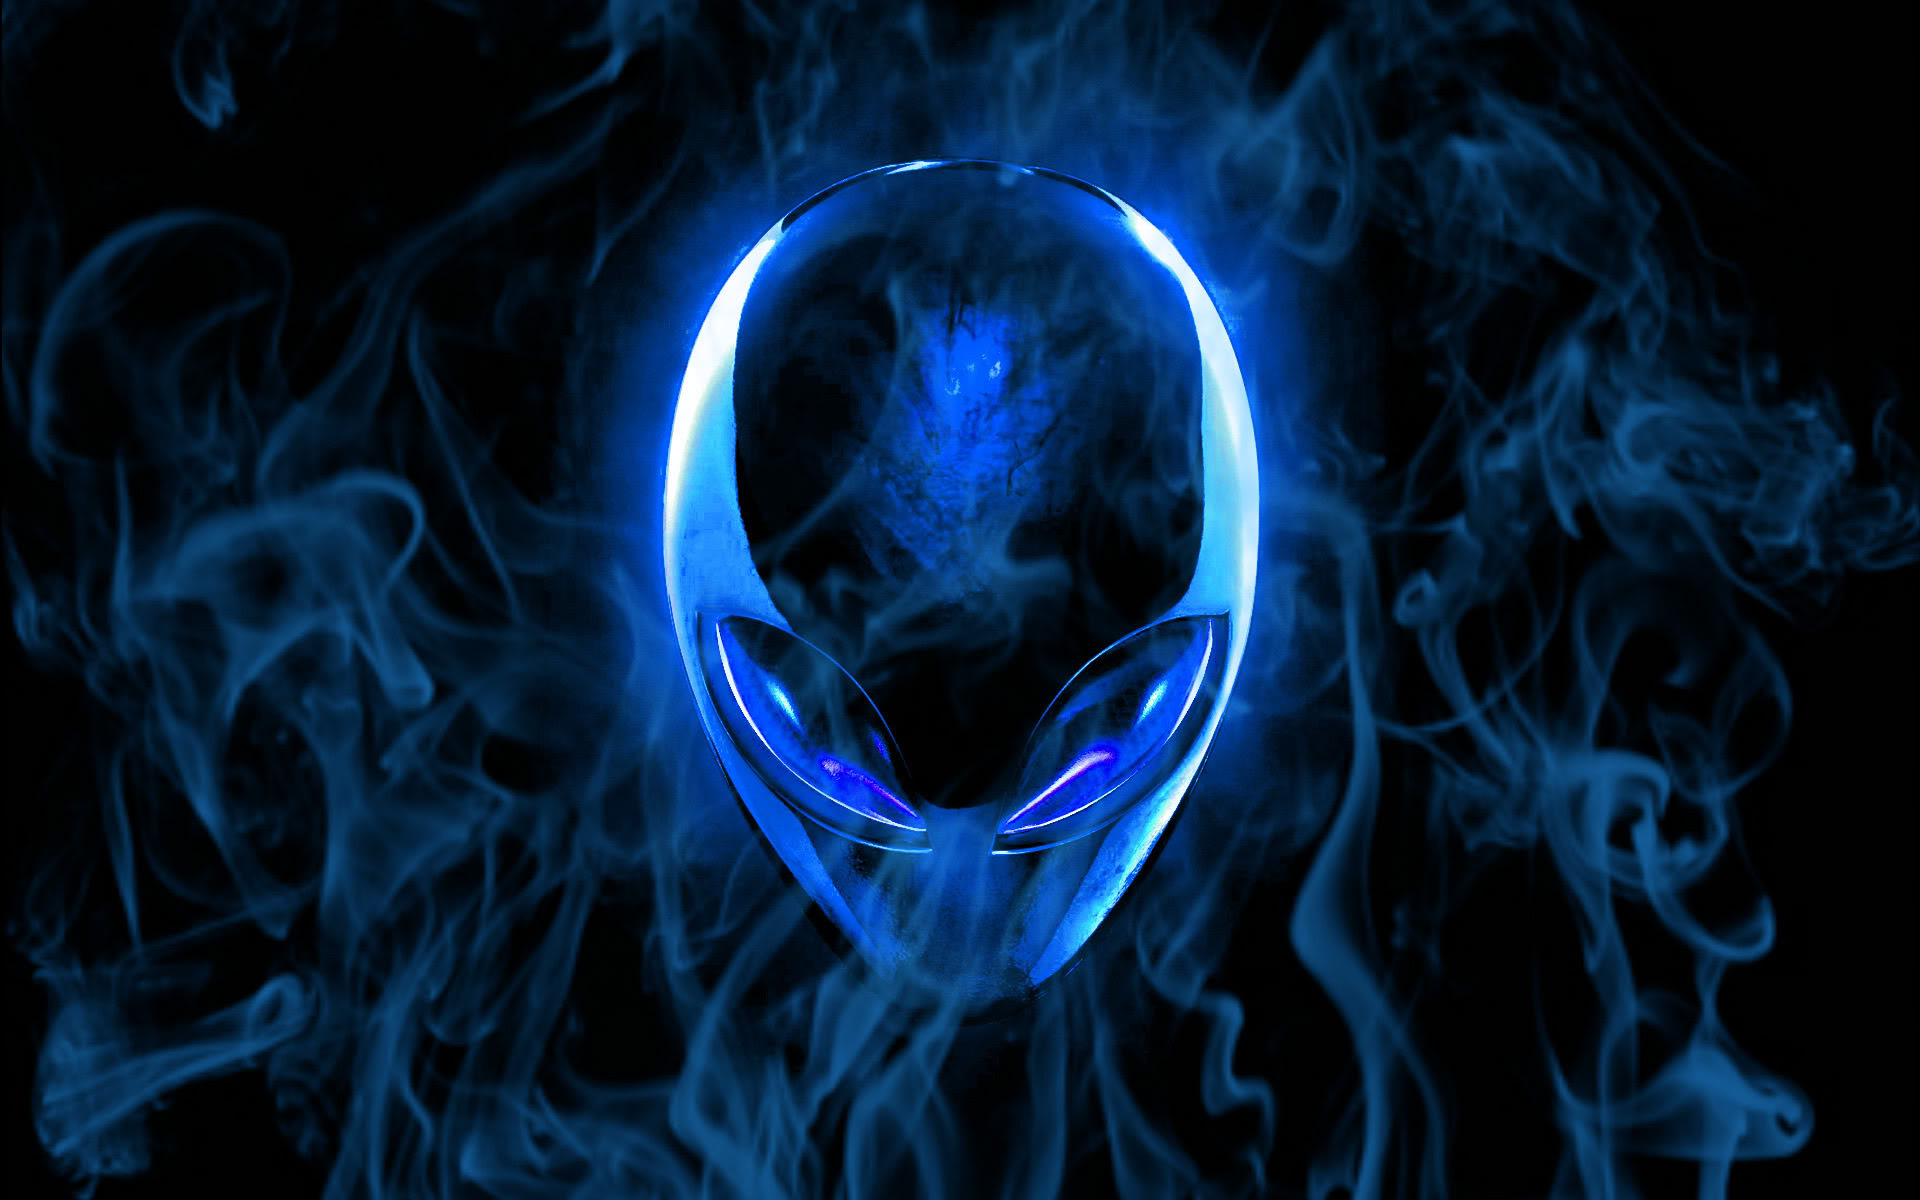 Alienware Desktop Backgrounds - Alienware Fx Themes